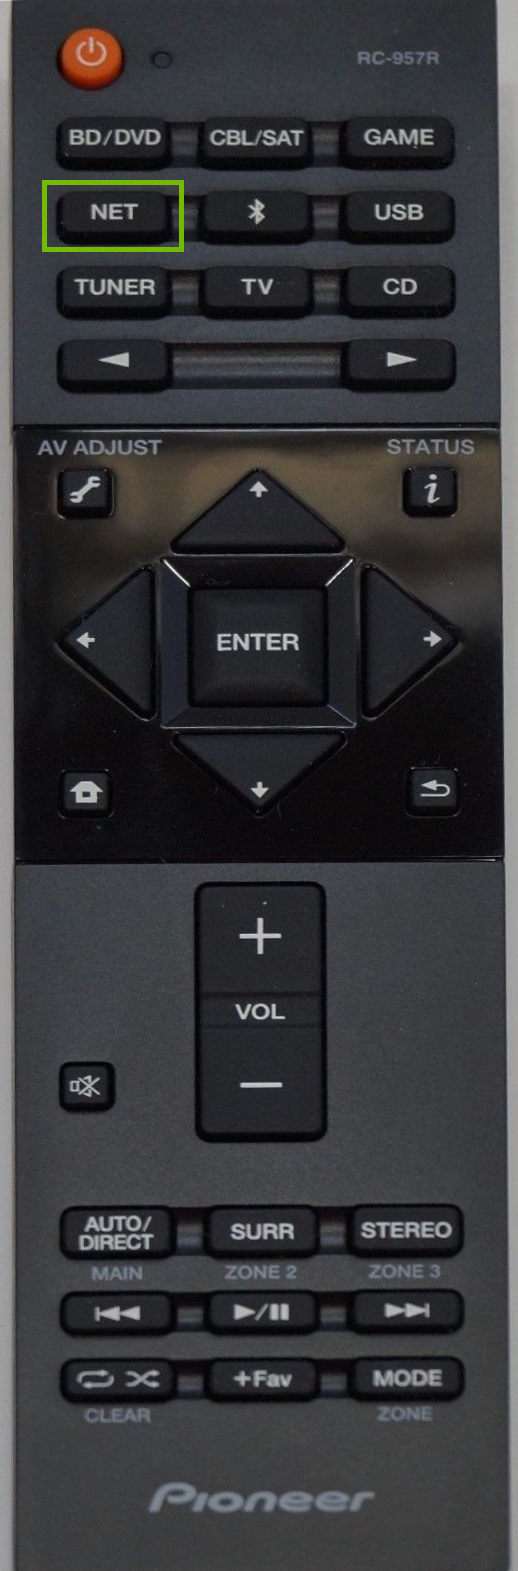 Remote with NET button highlighted